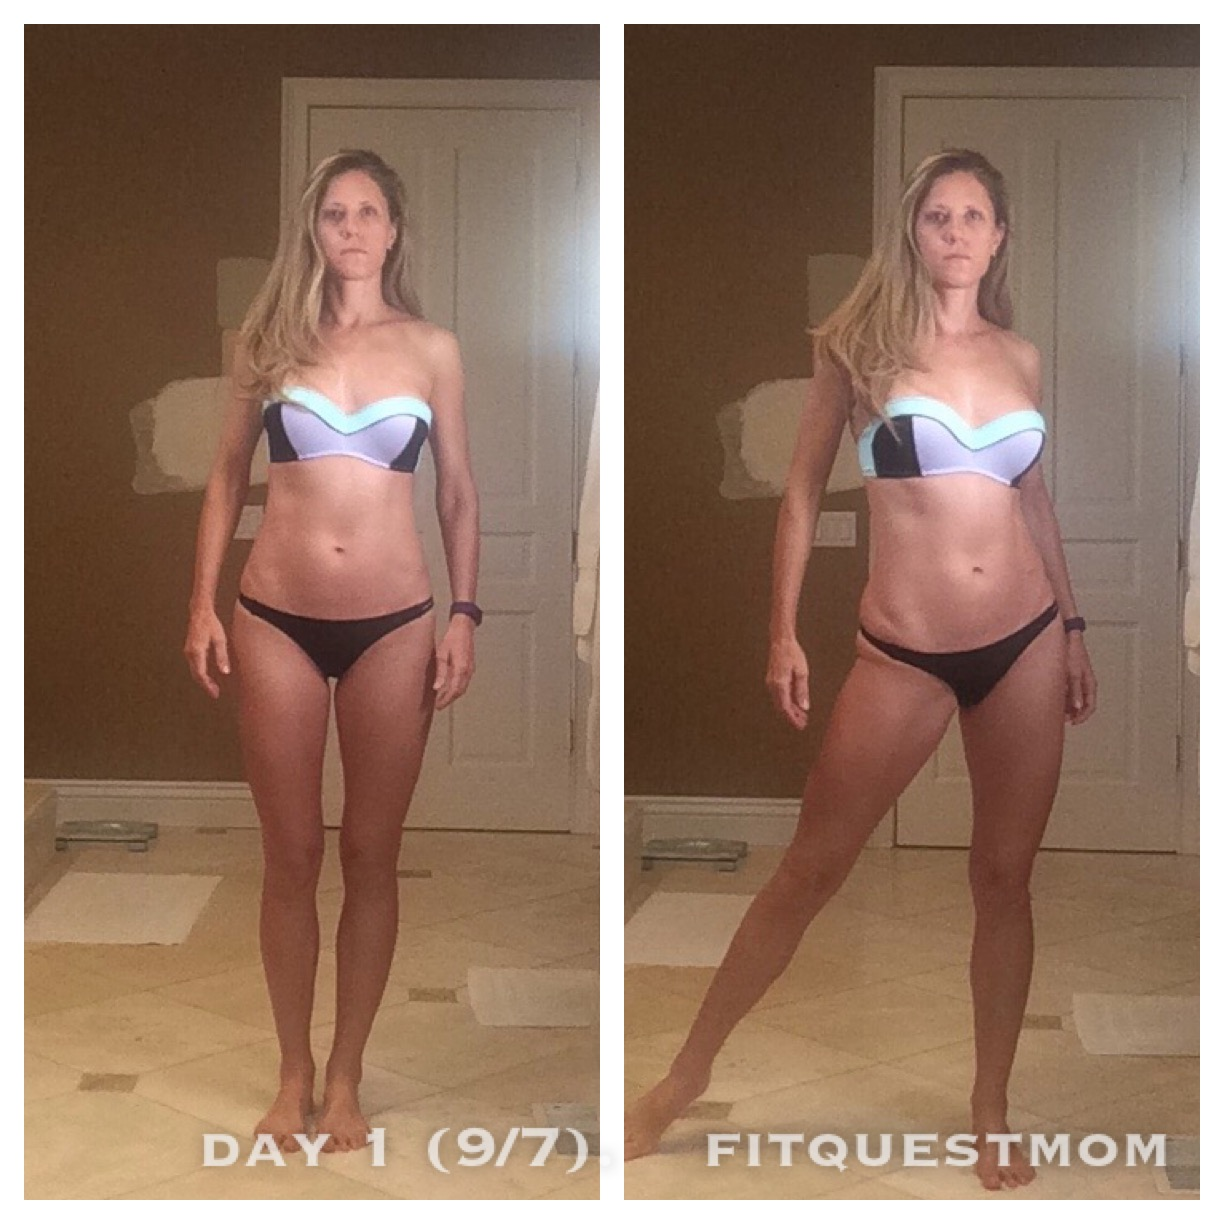 Gretchen Tseng FitQuestMom 8 Weeks to 40 years old